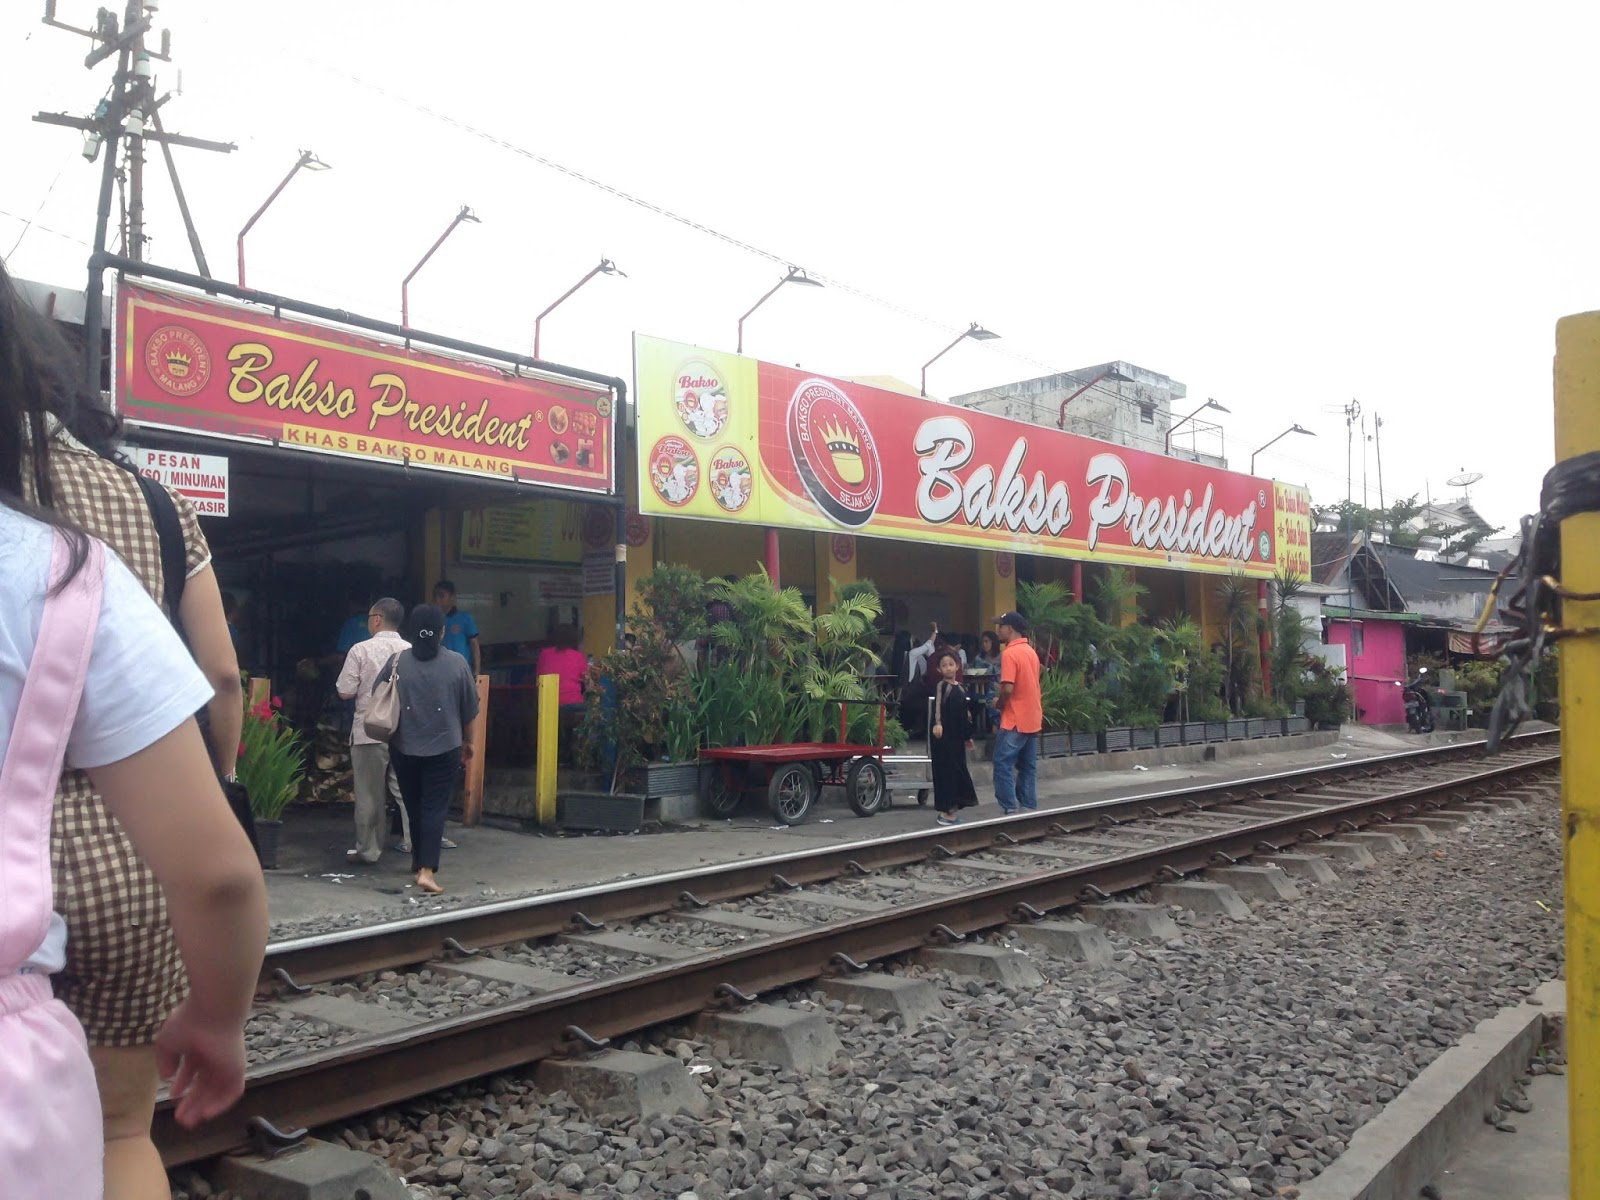 Food Travel Malang Batu Culinary Degortez City Tour Dan Next Up Is One Of Most Famous Spots Bakso President It Such A Unique Place Because Located Right To Train Railway